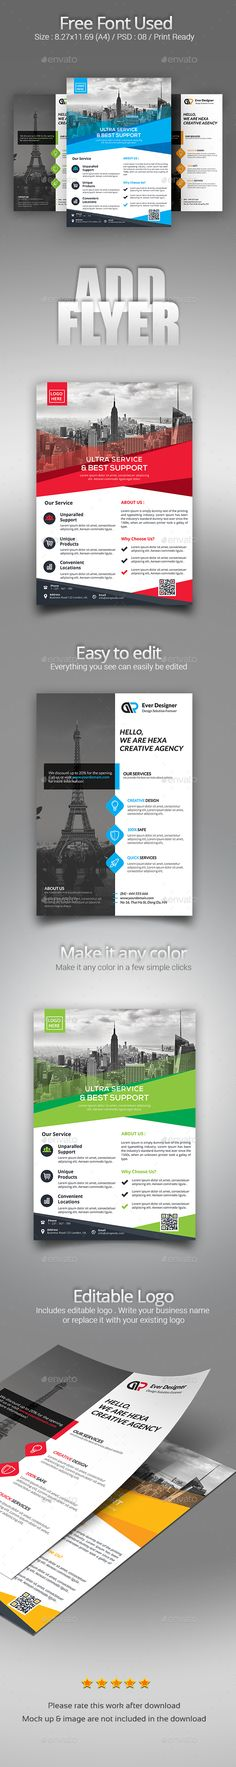 Flyer Flyer template, Brochures and Graphics - corporate flyer template